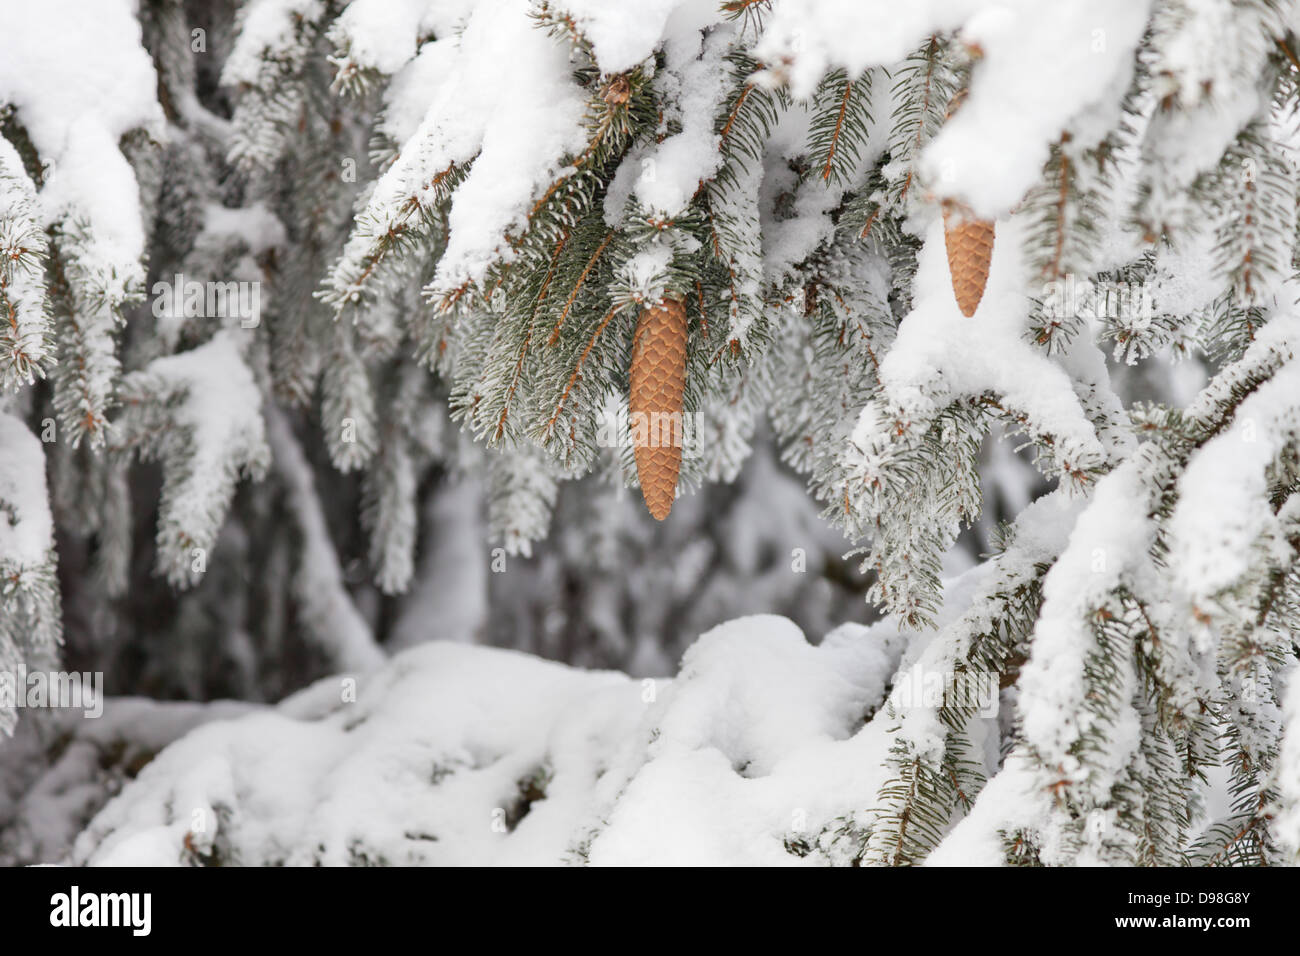 Close-up of the snow covered branches and pine cones of a Norway Spruce tree. - Stock Image